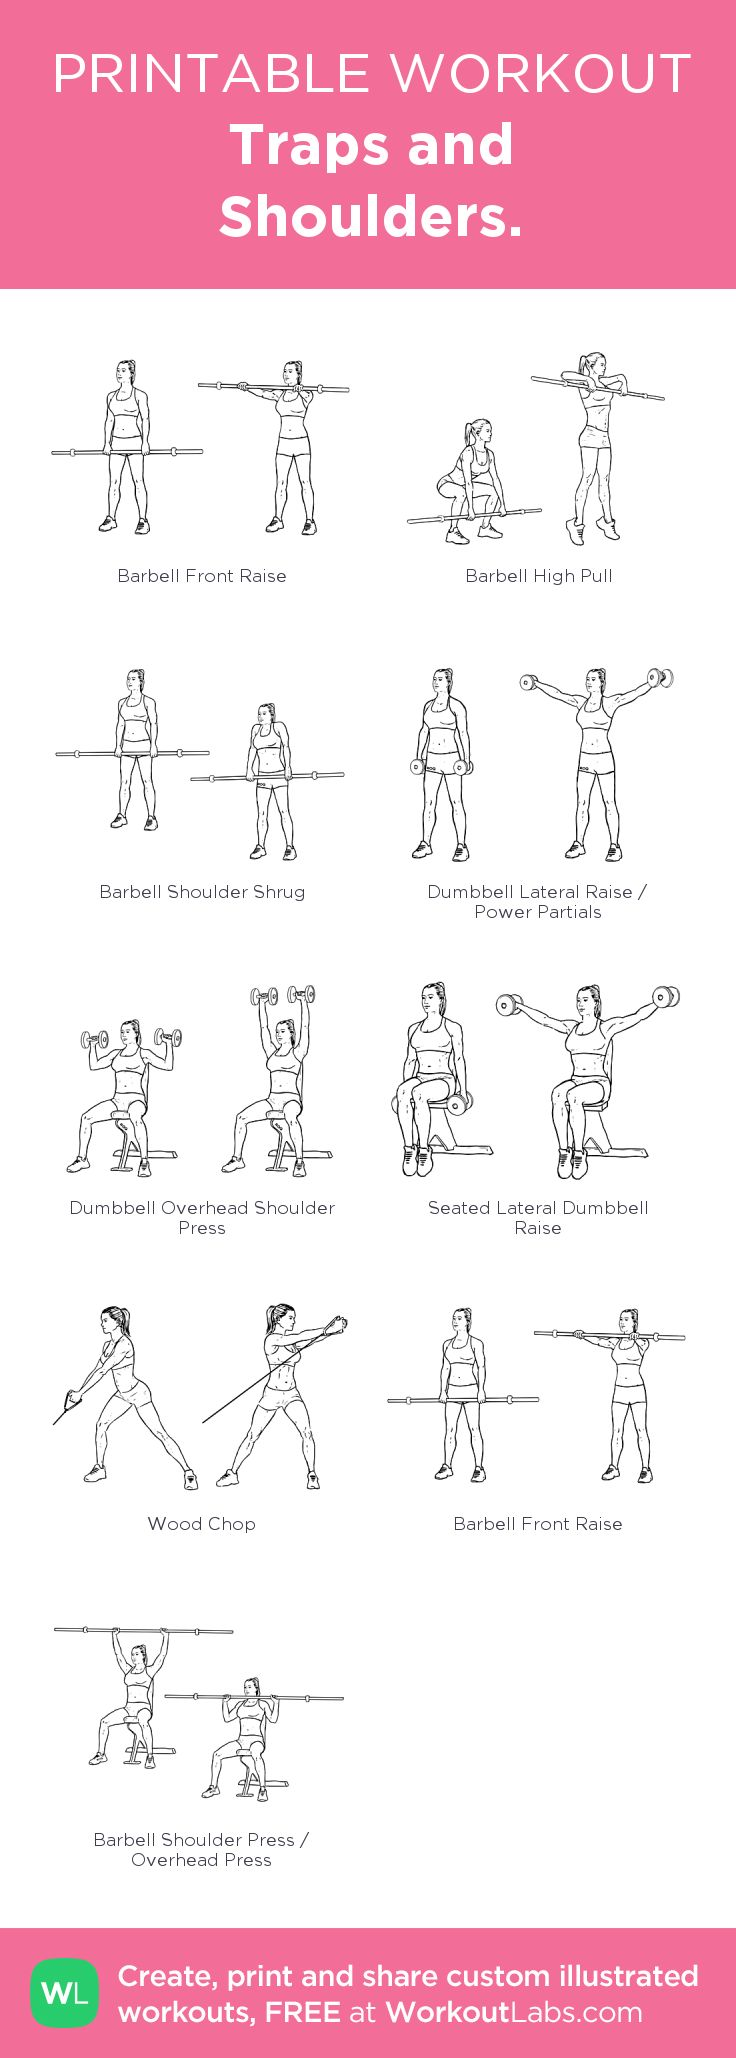 Traps and Shoulders.: my visual workout created at WorkoutLabs.com • Click through to customize and download as a FREE PDF! #customworkout